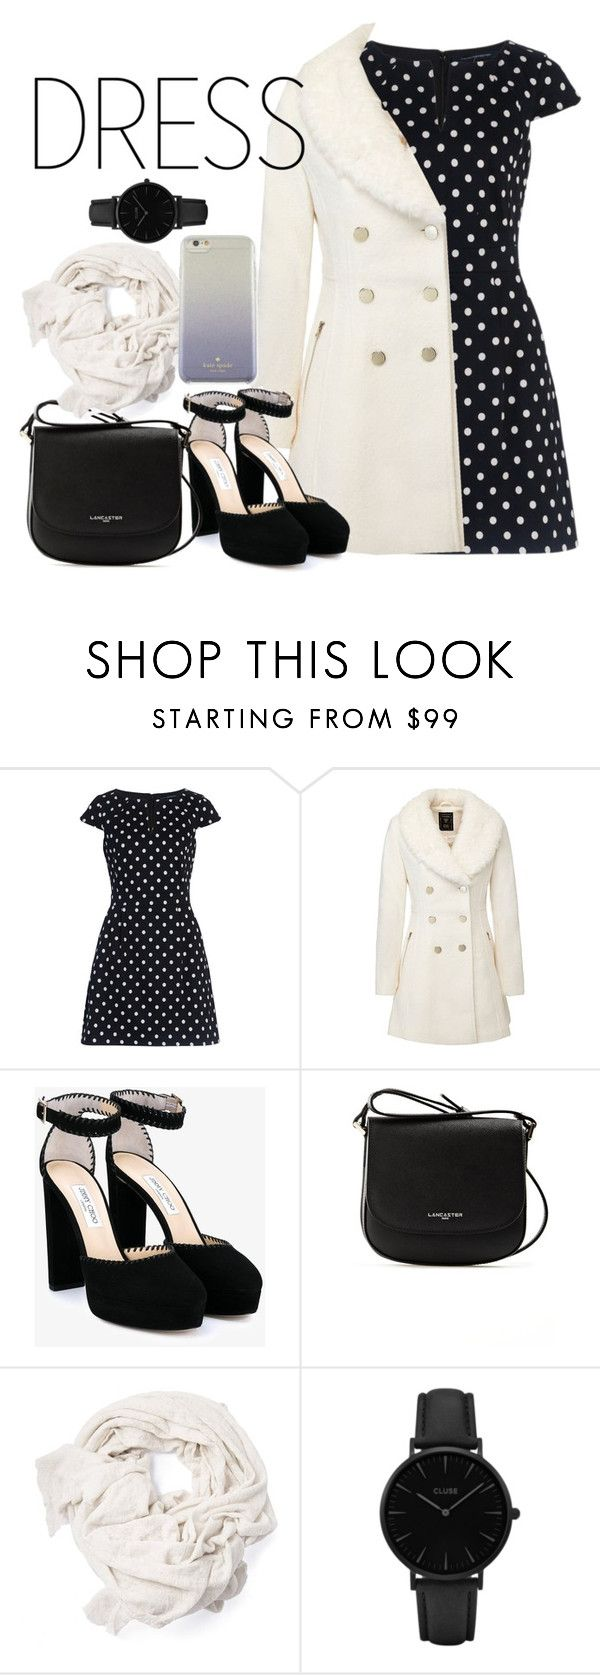 """Winter Chic"" by deepest-depths ❤ liked on Polyvore featuring French Connection, Jimmy Choo, Lancaster, CLUSE and Kate Spade"